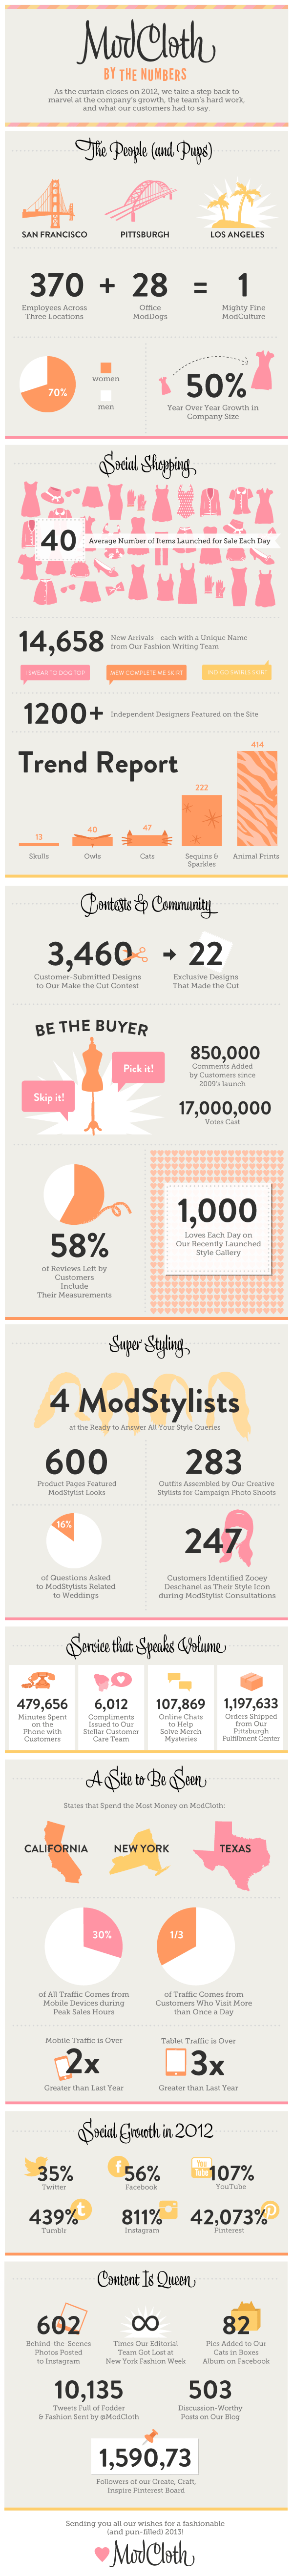 ModCloth 2012 performance infographic